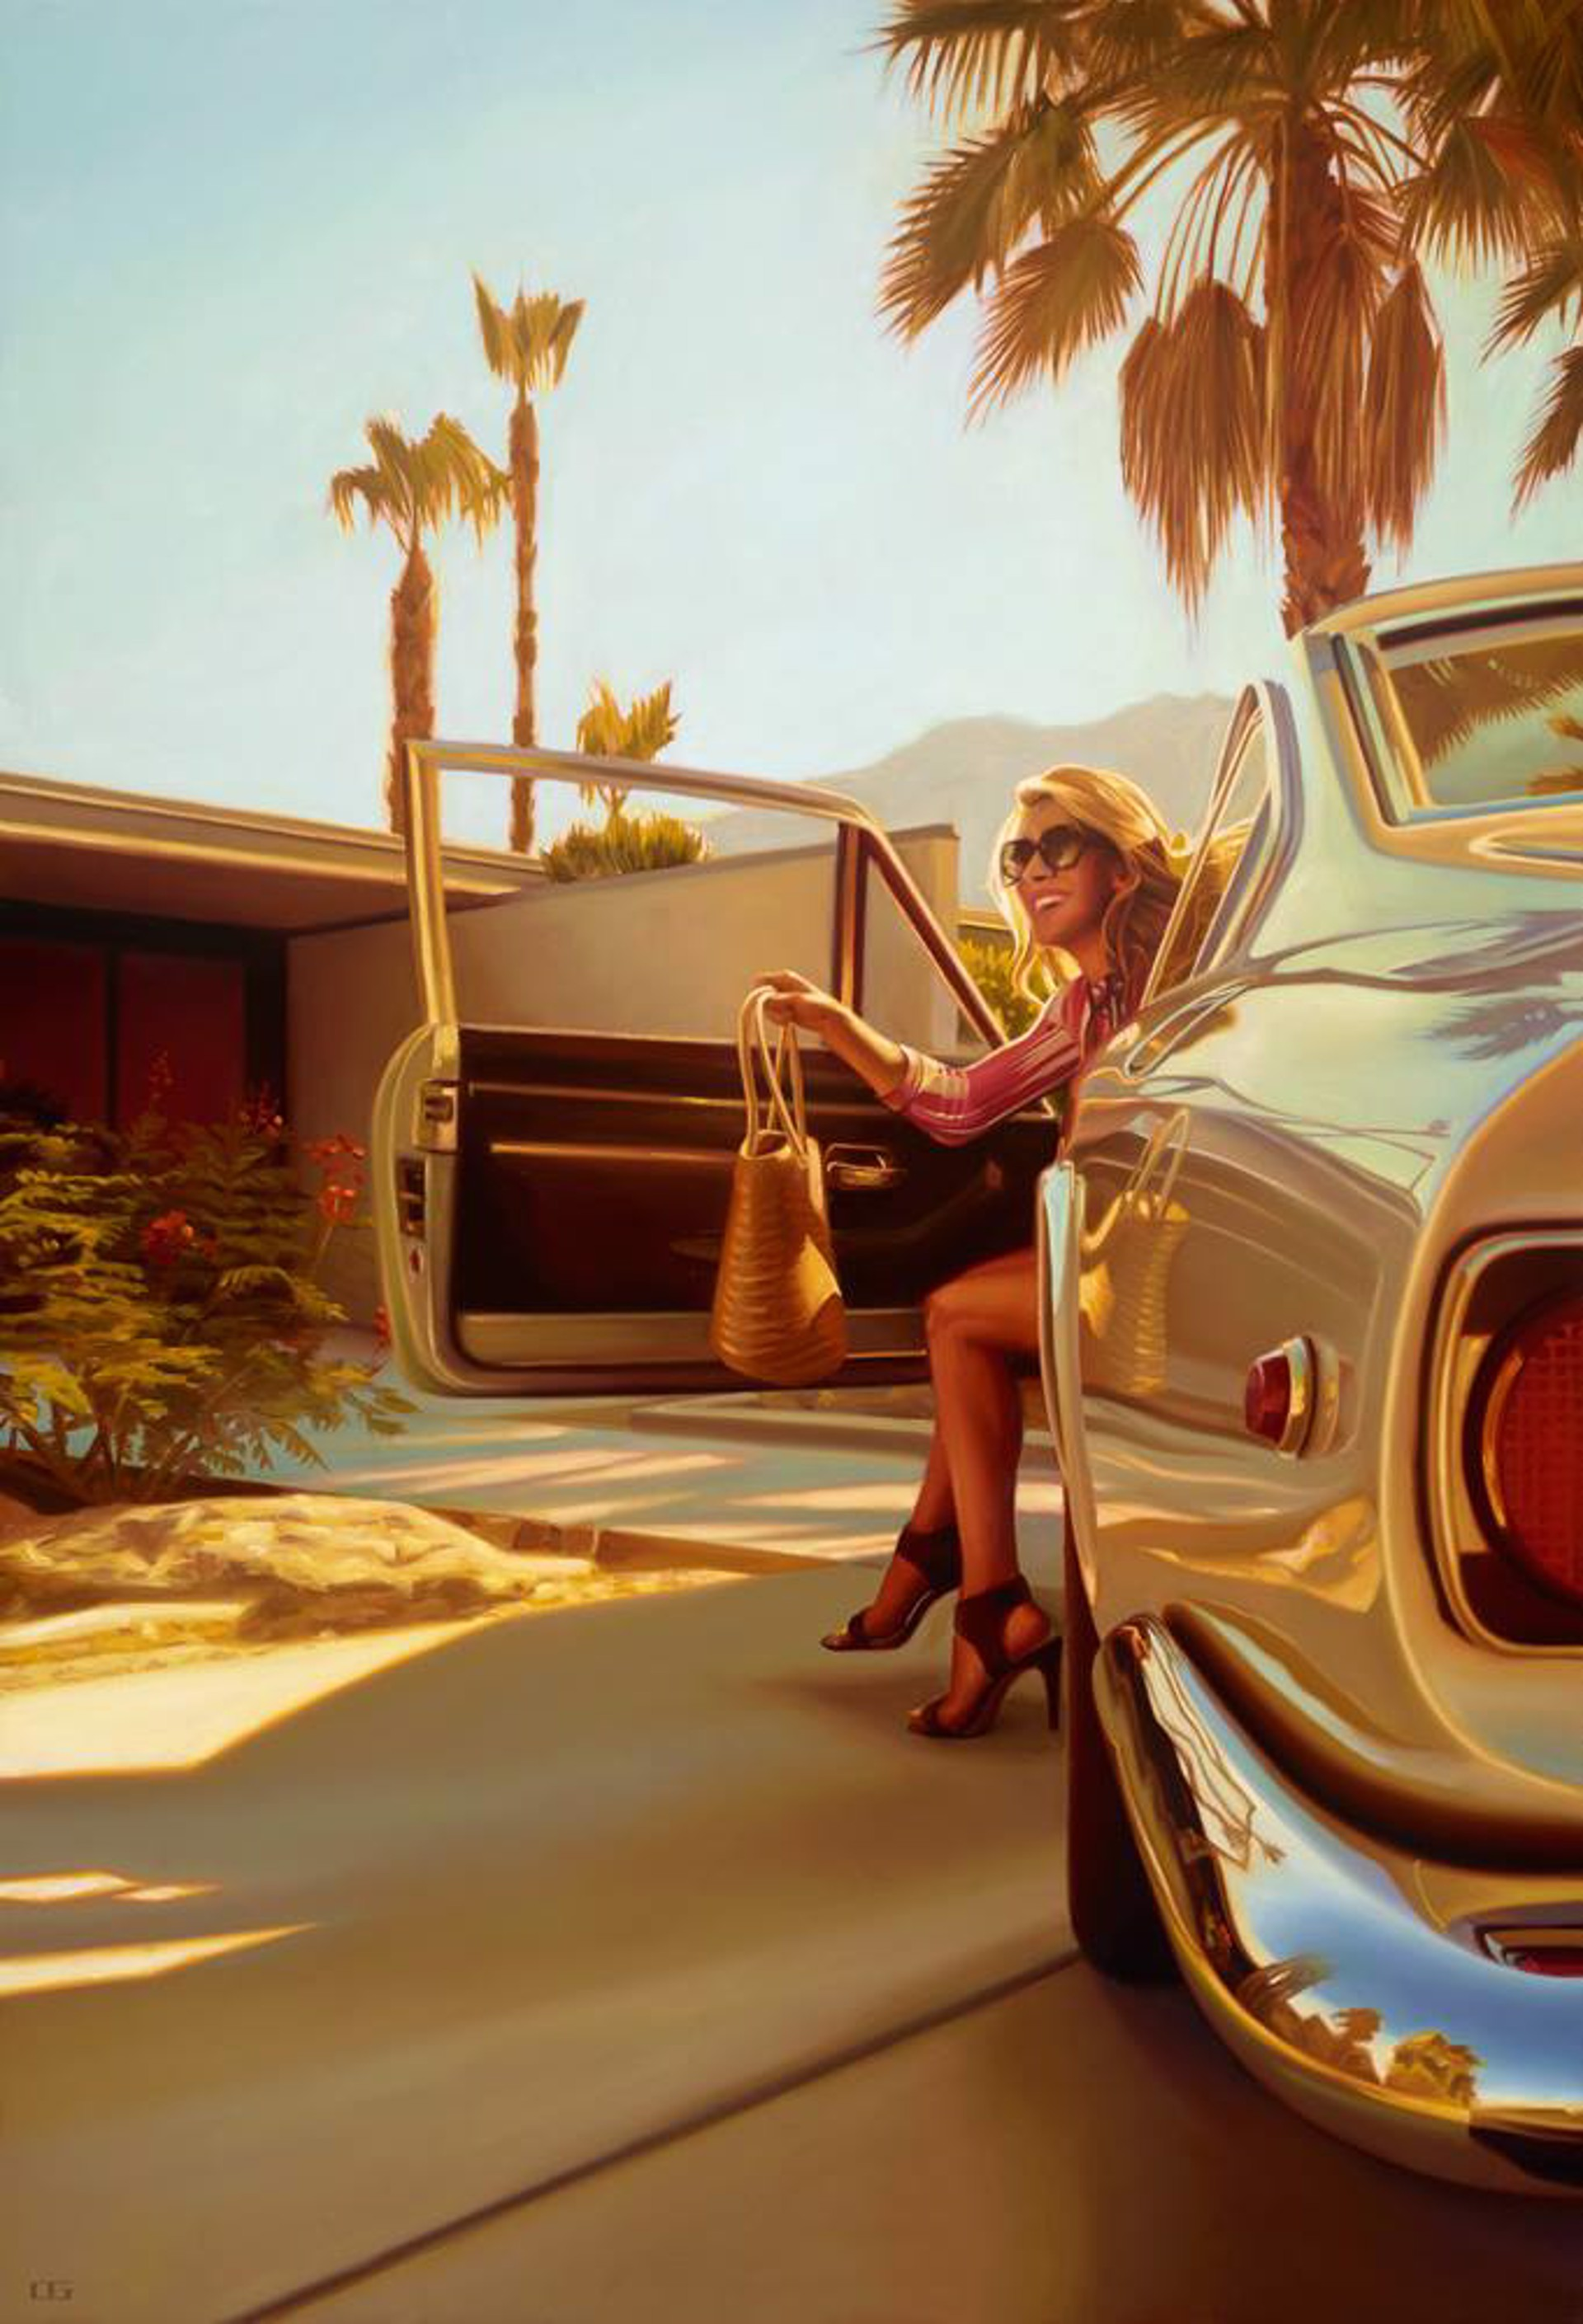 Gotta Wear Shades (S/N) by Carrie Graber